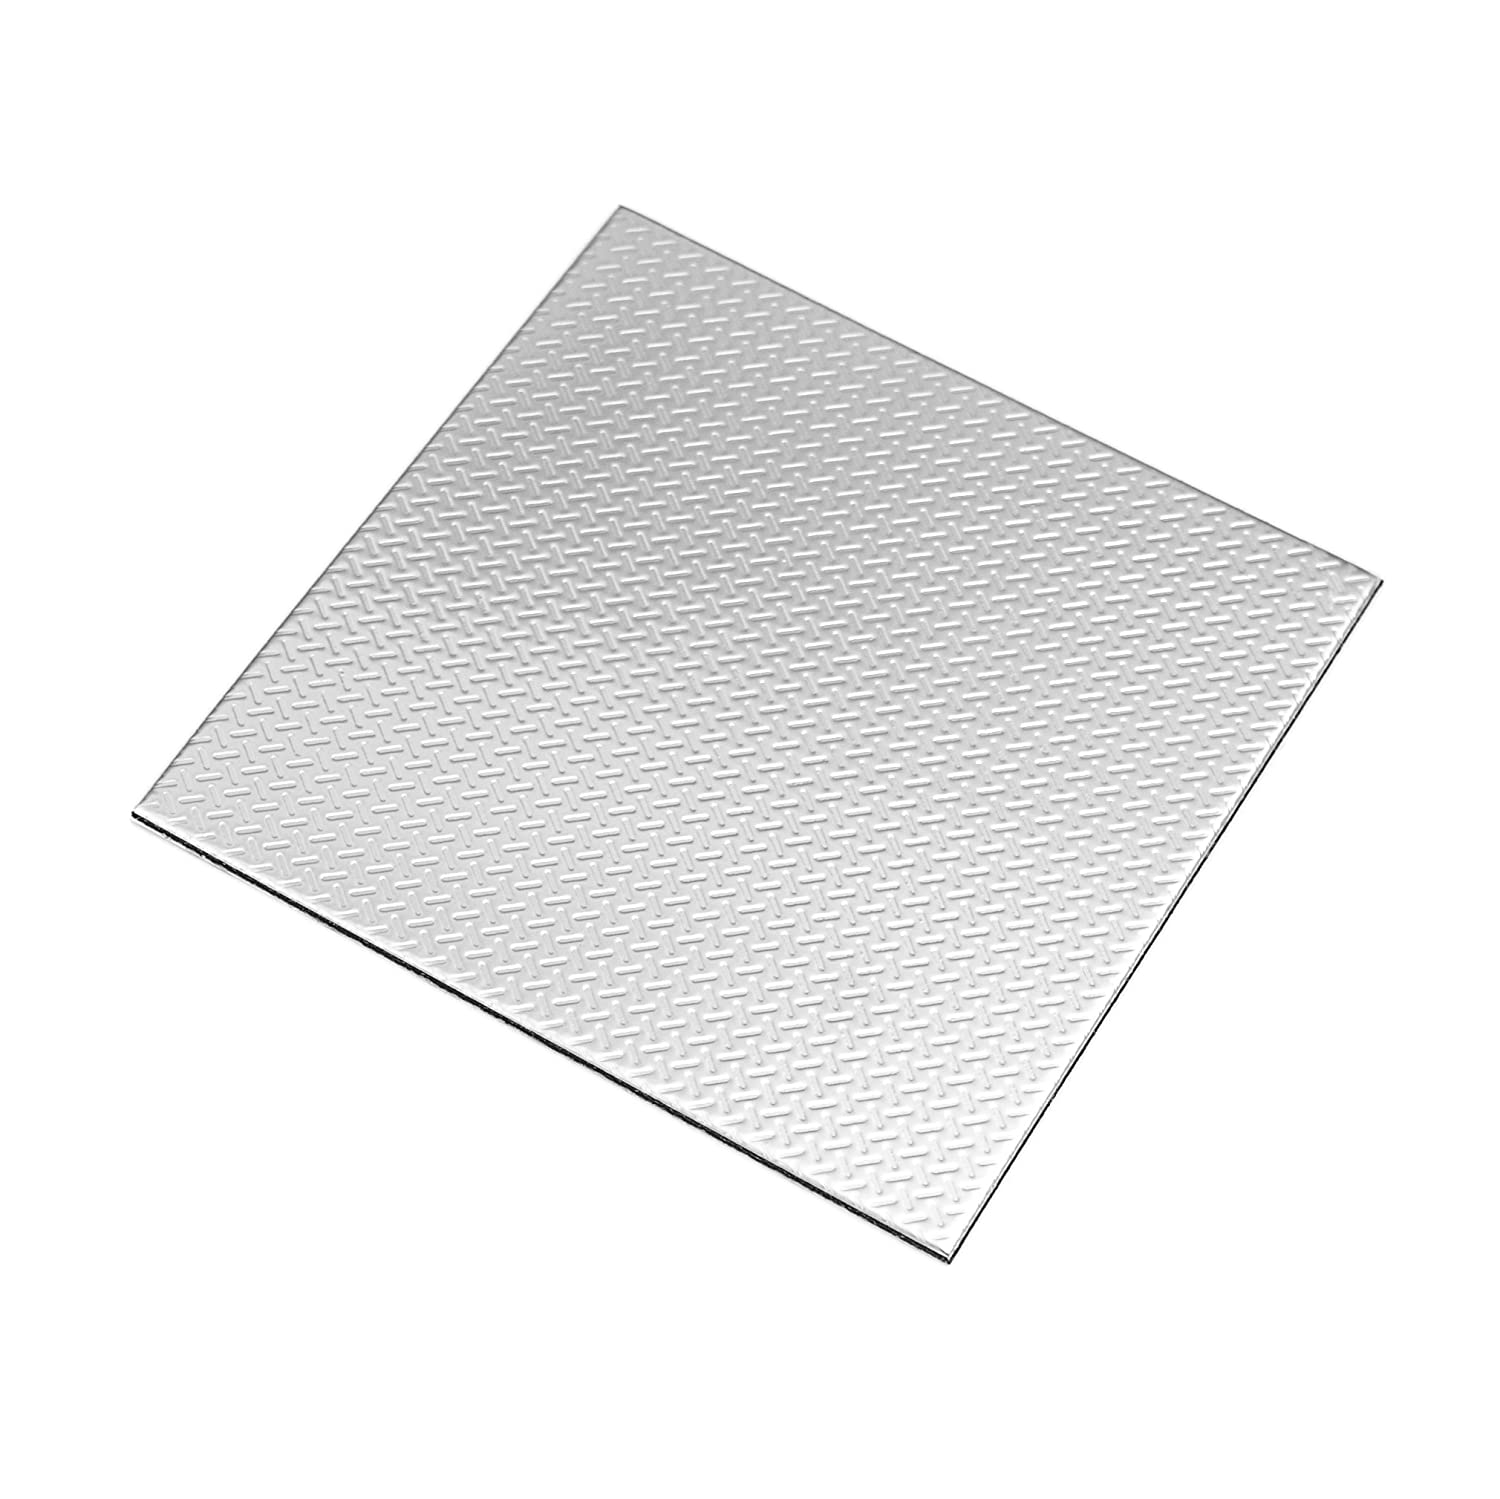 Ver Block Peel and Stick Design Stainless Steel DIY Interior Tile 5PCS (7.8 x 7.8 inch (5PCS), Check Silver) DSP